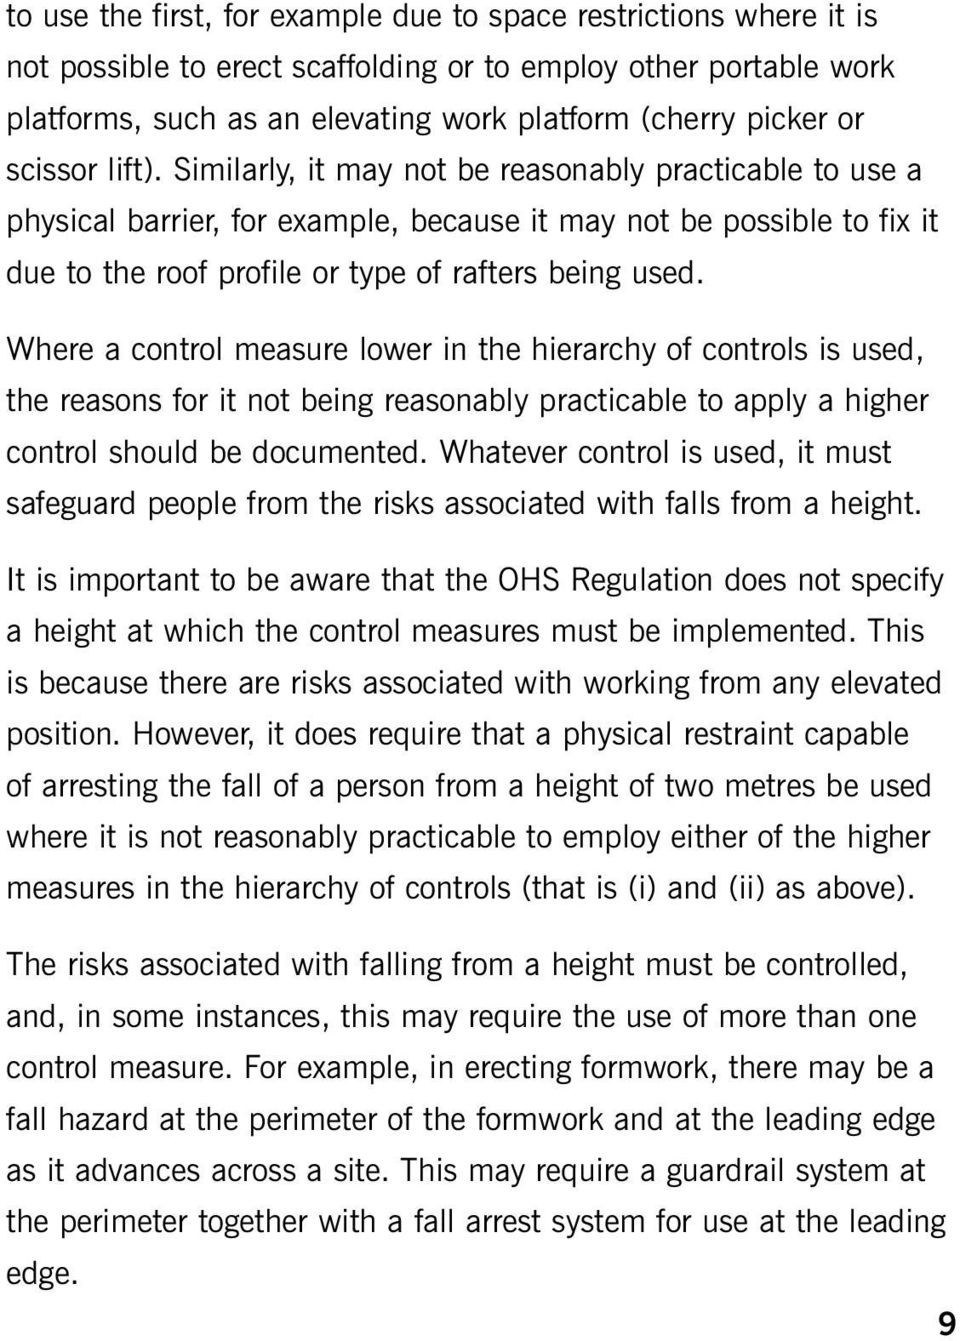 Where a control measure lower in the hierarchy of controls is used, the reasons for it not being reasonably practicable to apply a higher control should be documented.